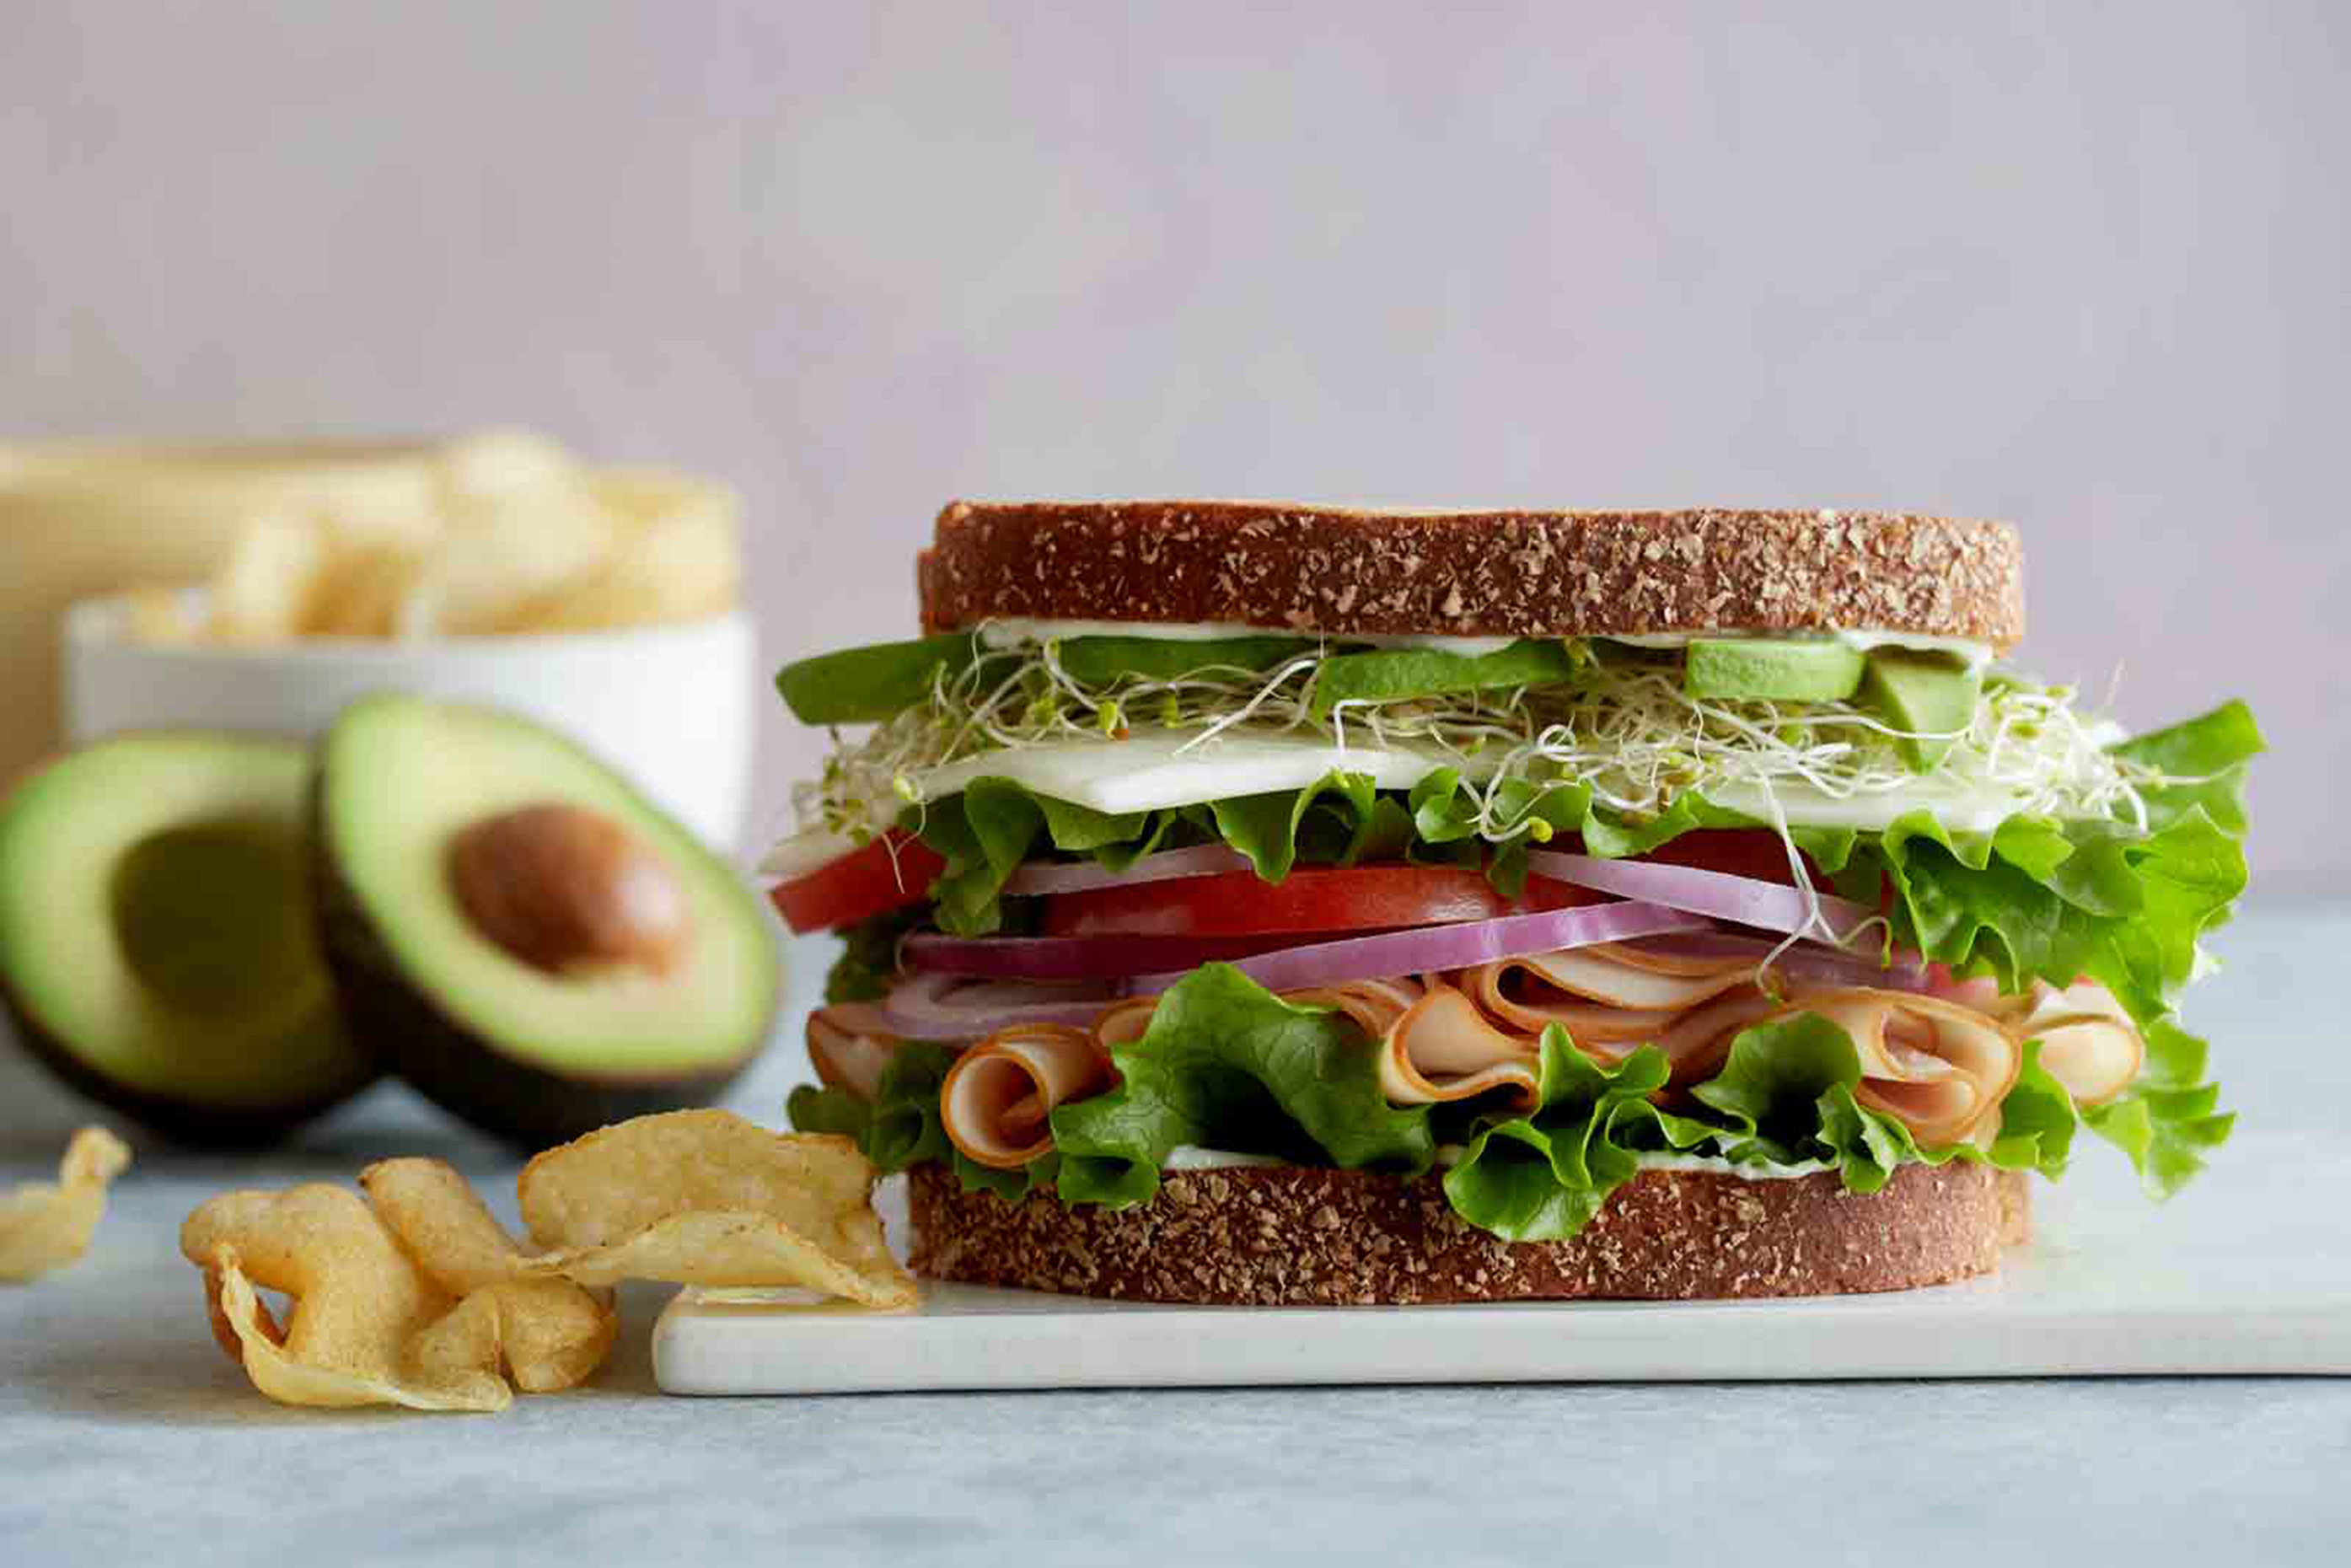 Sandwich photography by Teri Lyn Fisher